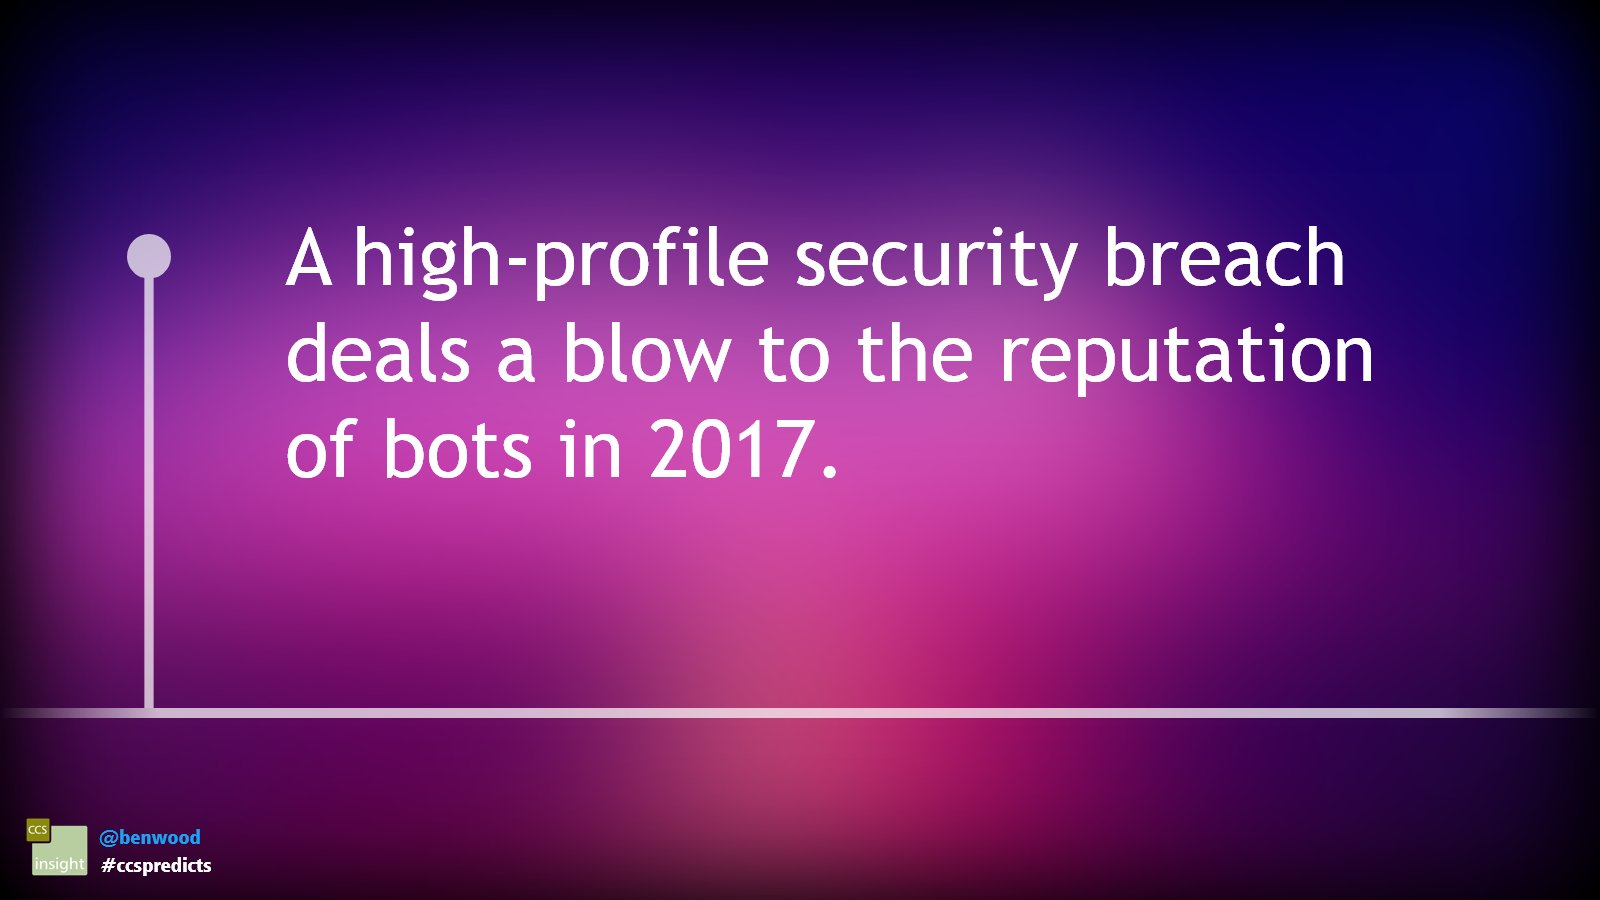 A high-profile security breach deals a blow to the reputation of bots in 2017 #ccspredicts https://t.co/ybEucR9sVY